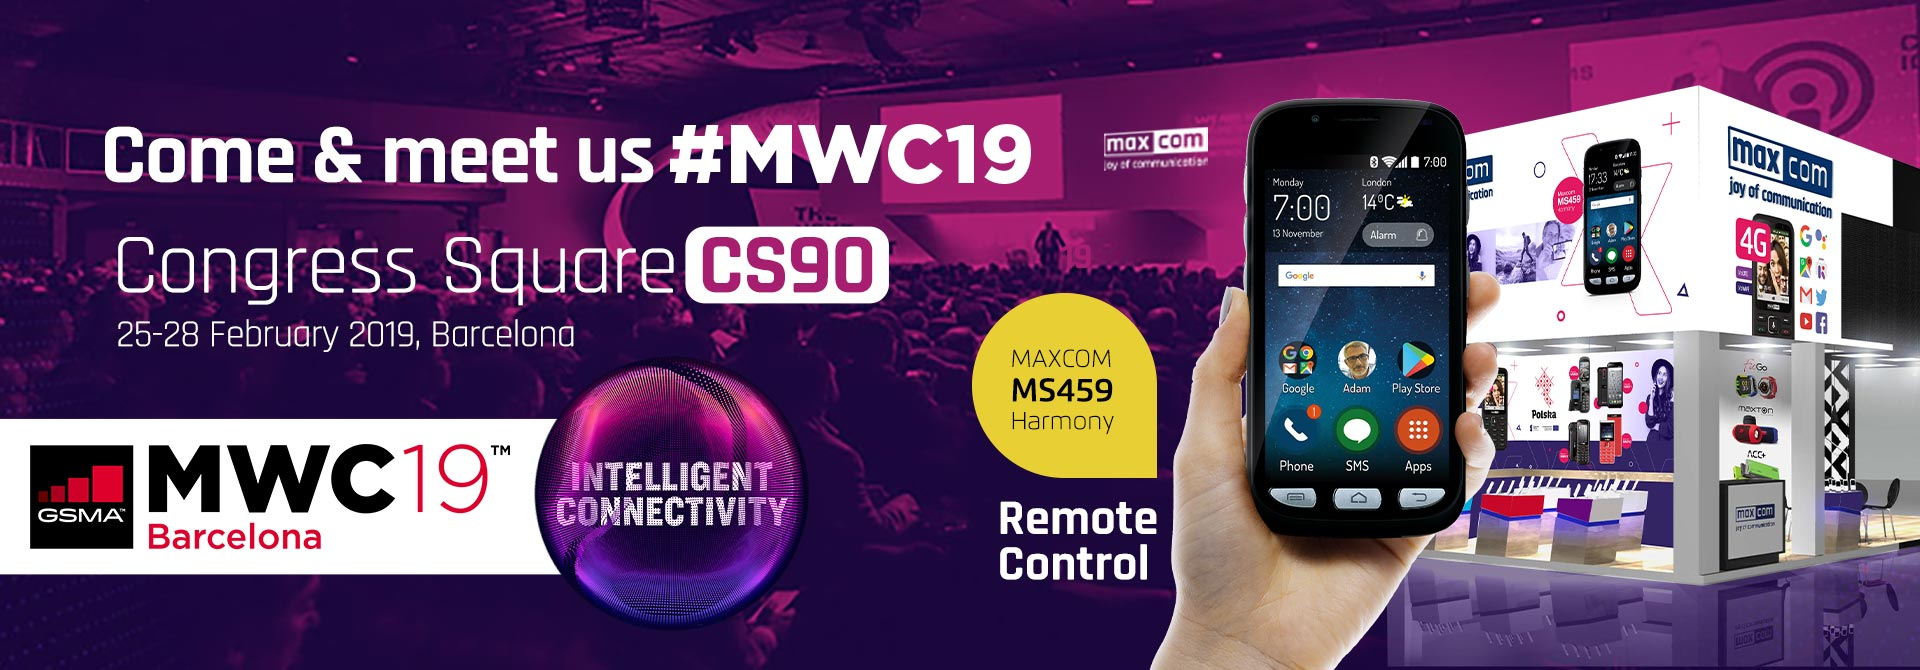 Come and meet us at MWC 2019 in Barcelona